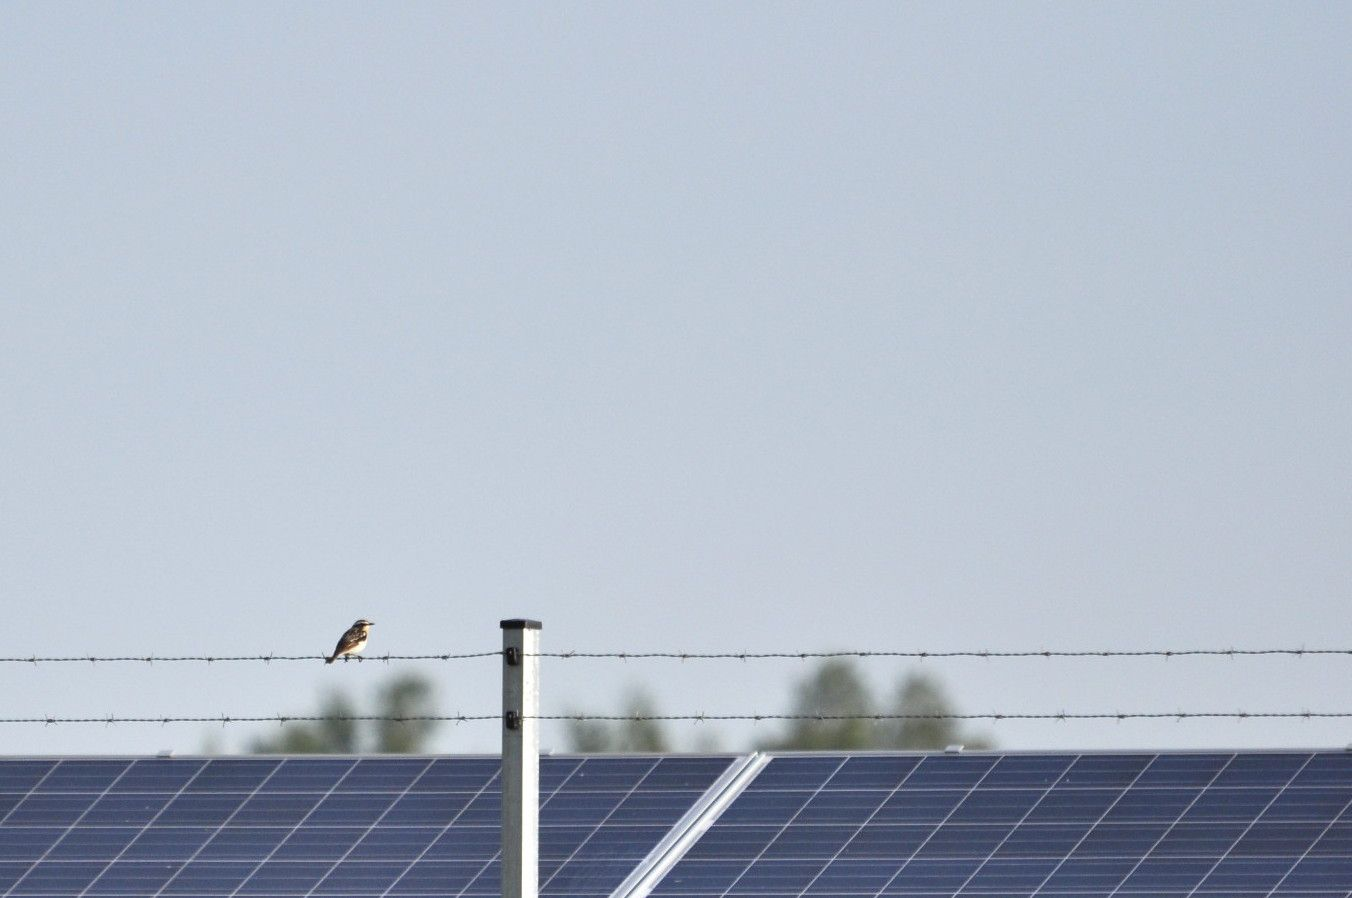 FAUNISTISCHES MONITORING IN SOLARPARKS